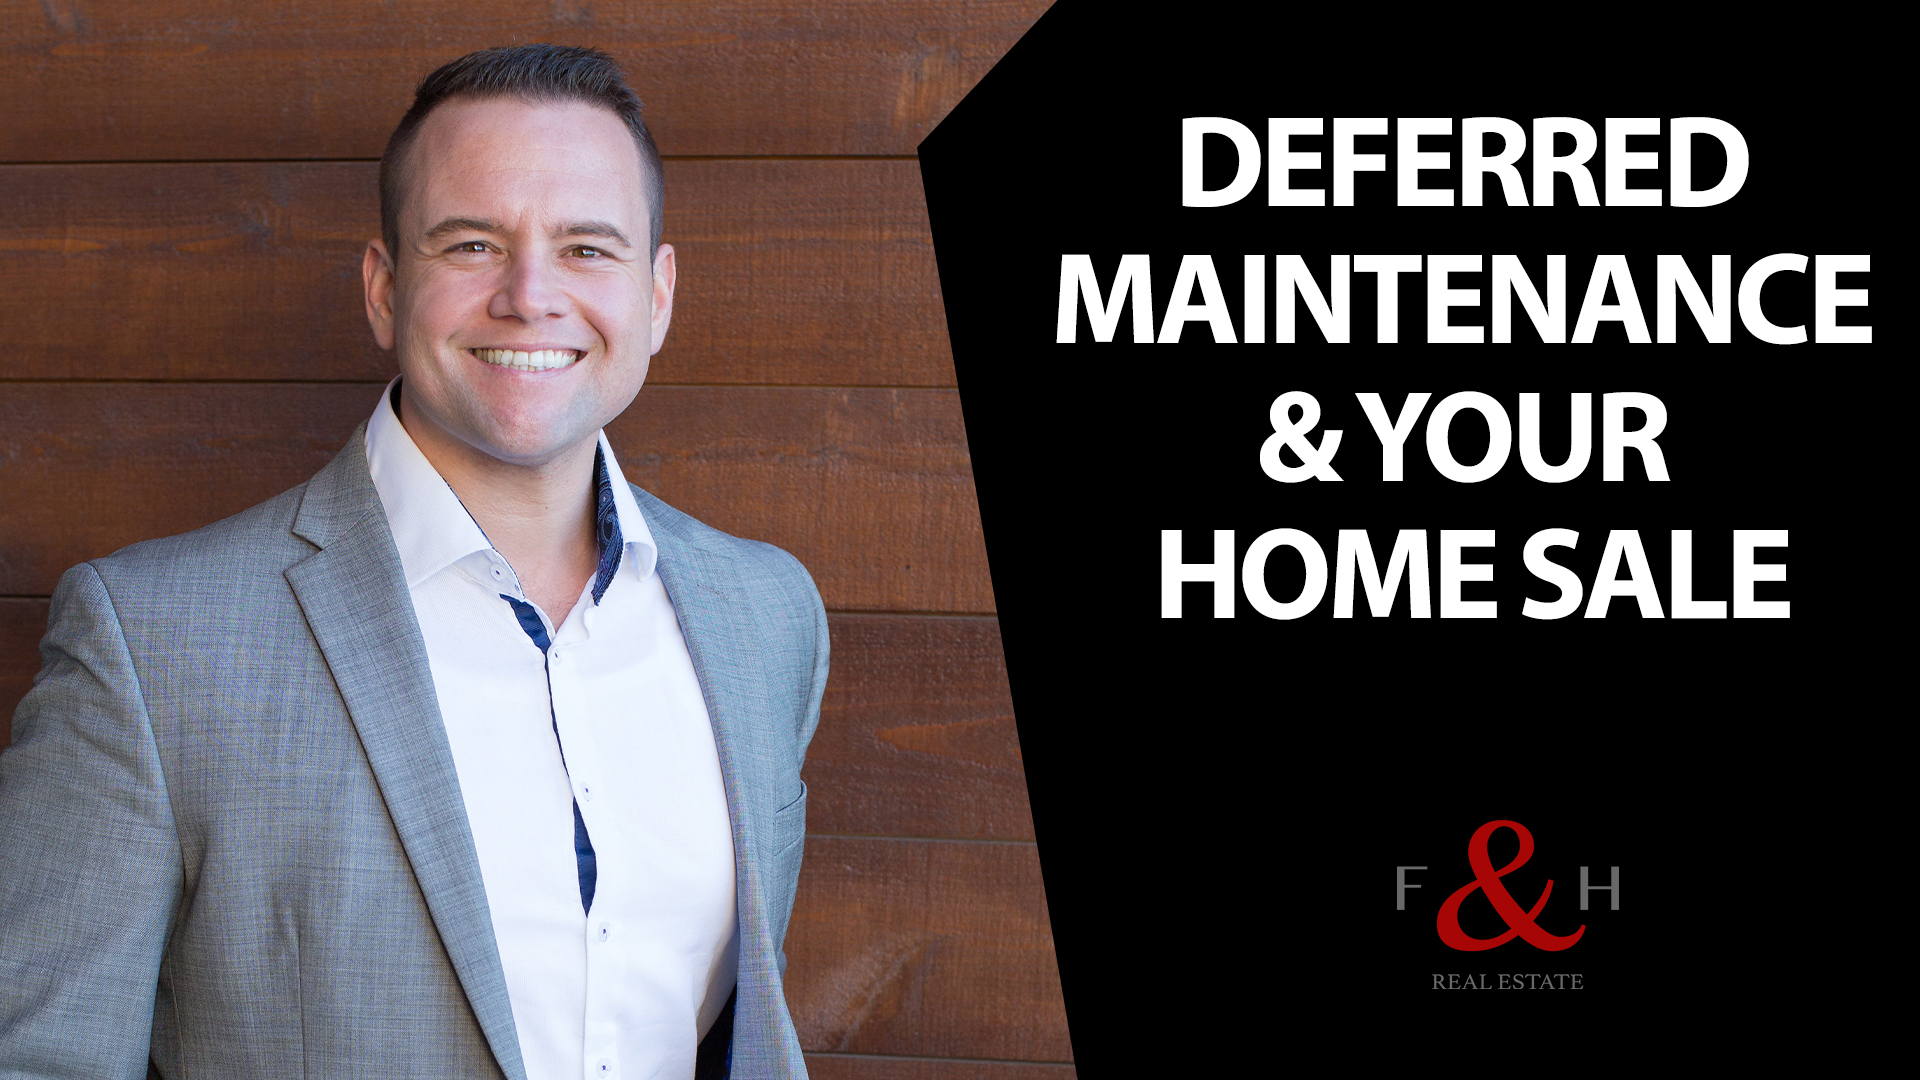 Deferred Maintenance: An Ounce of Prevention Is Worth a Pound of Cure